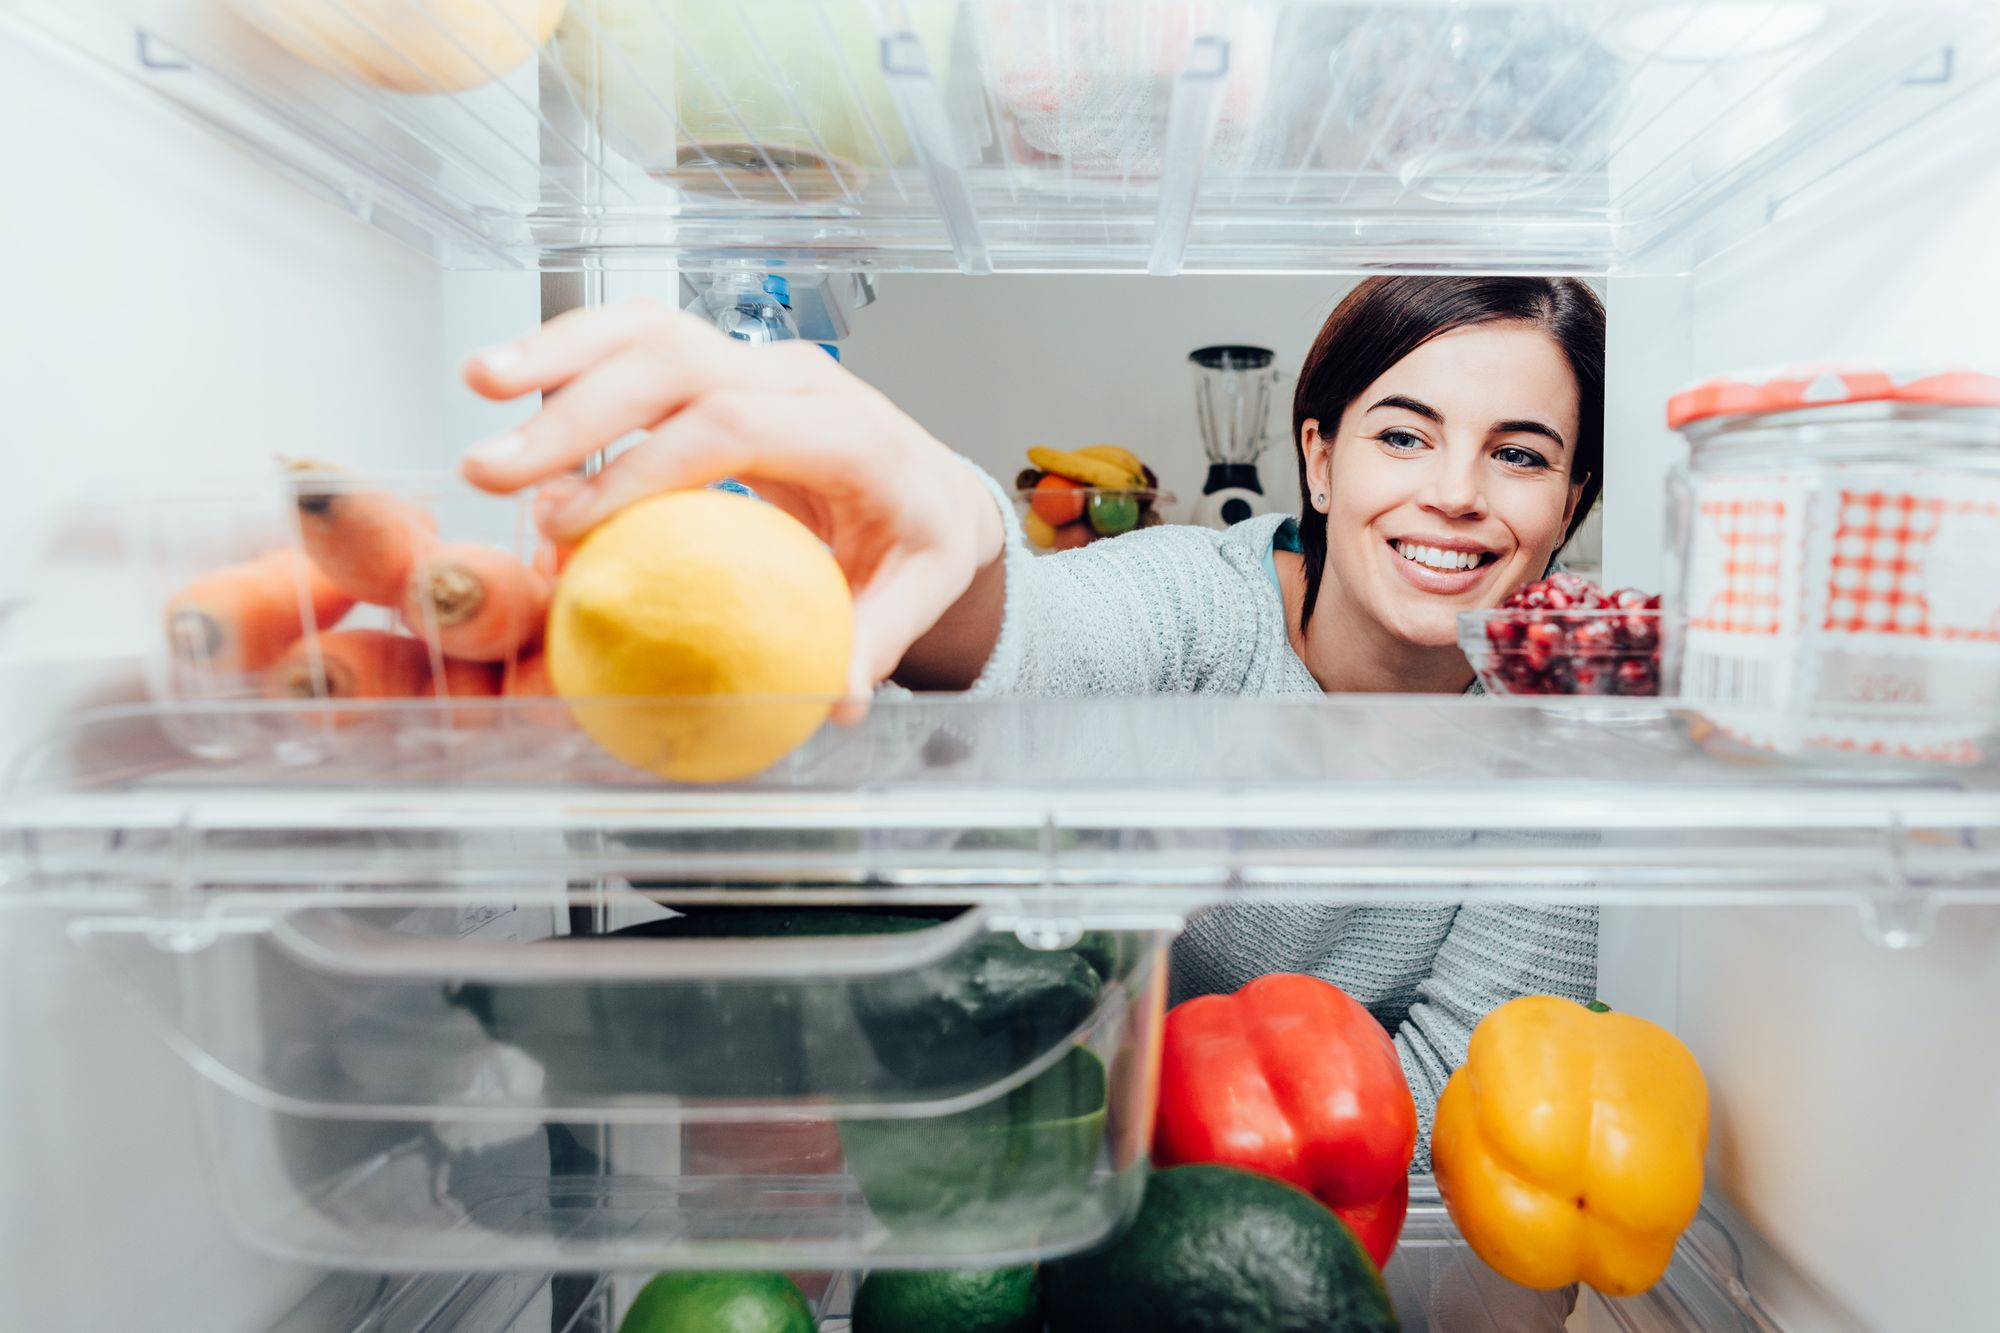 5 Healthy Snacks to Keep You Satisfied While Working From Home